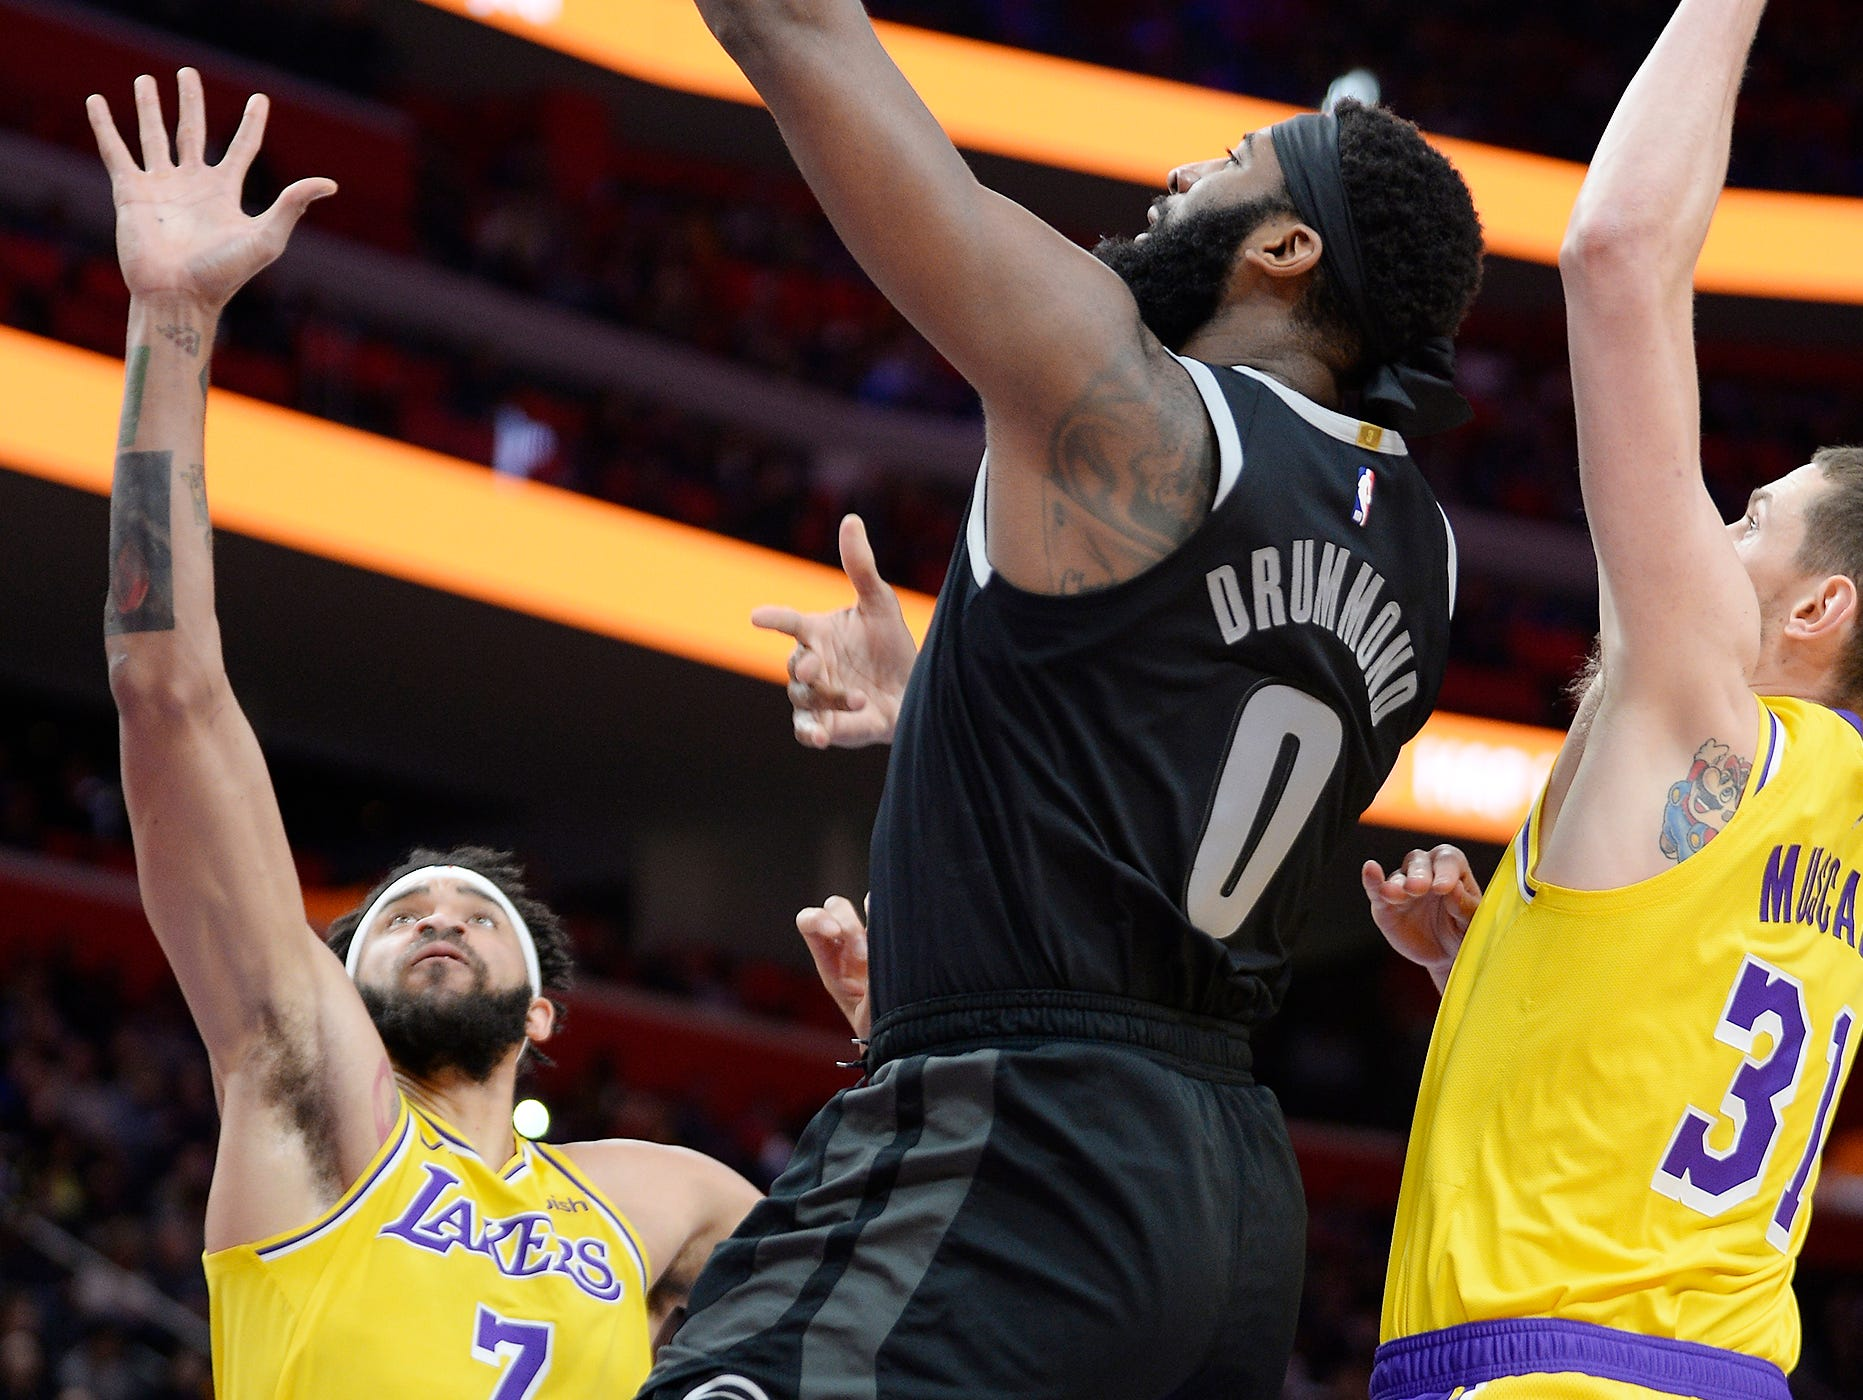 Pistons' Andre Drummond shoots over Lakers' JaVale McGee, (l), and Mike Muscala in the first quarter. Drummond had 19 points and 23 rebounds.